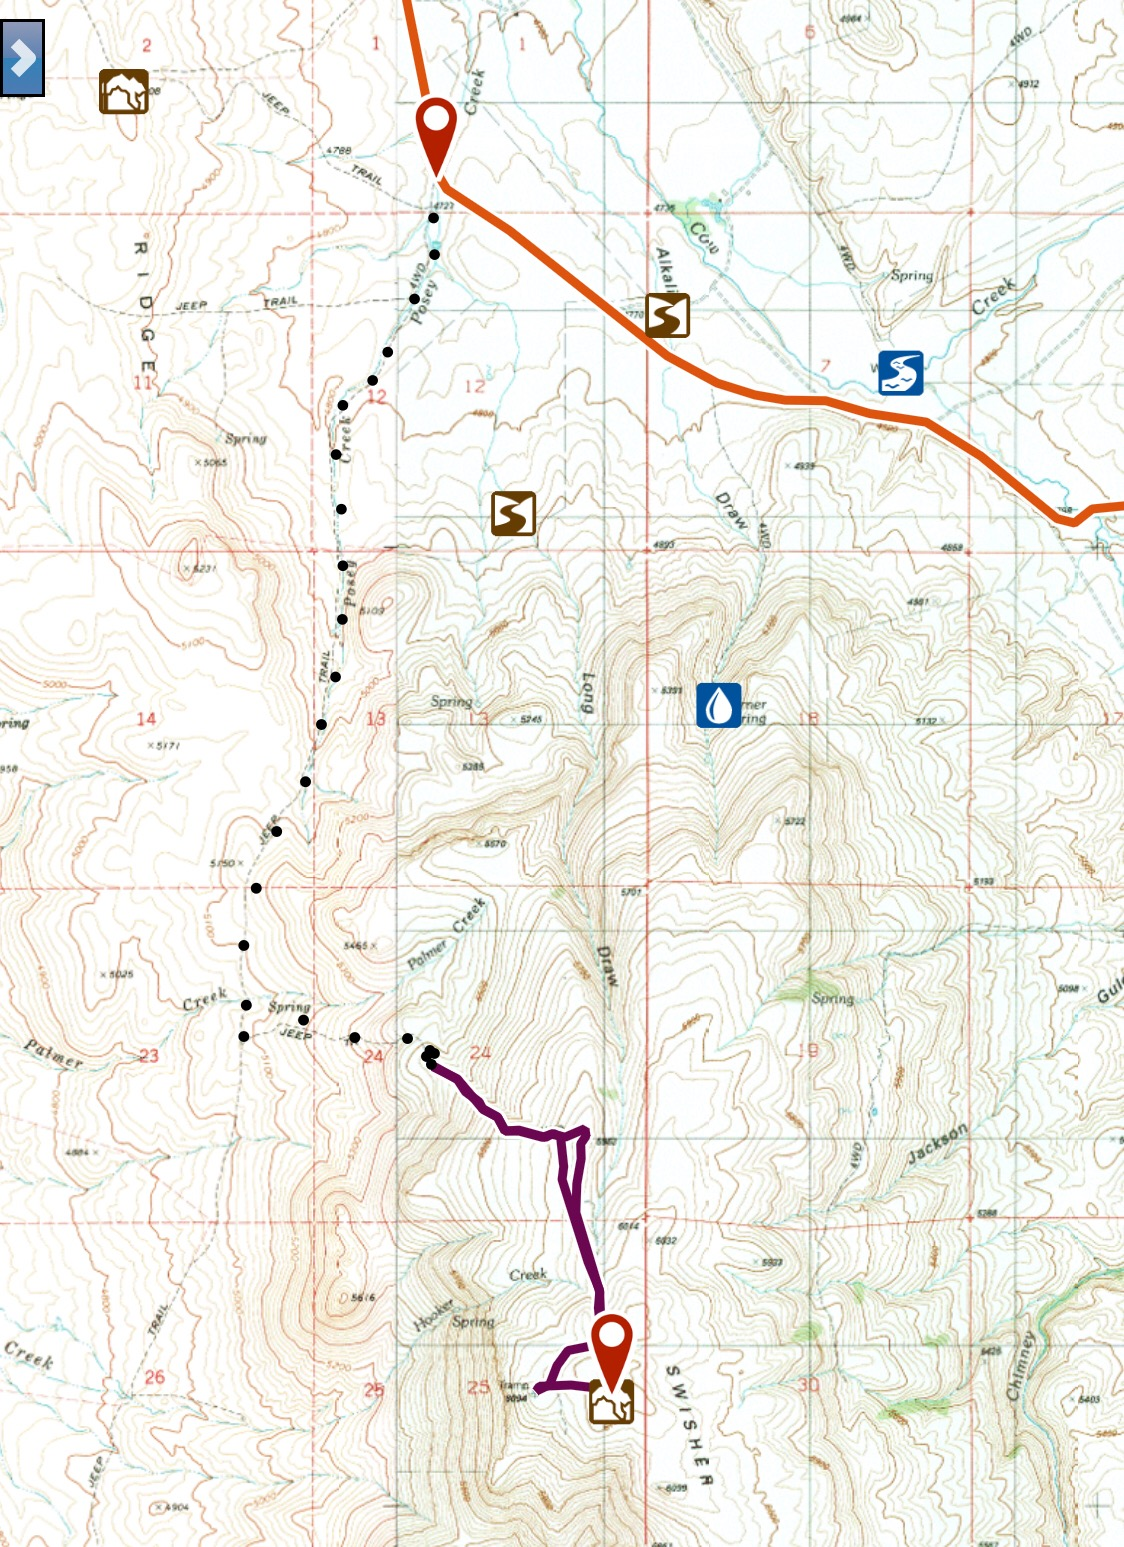 The dotted line shows the 4WD road that leads to the summit of Swisher Mountain. The purple shows the section I walked.